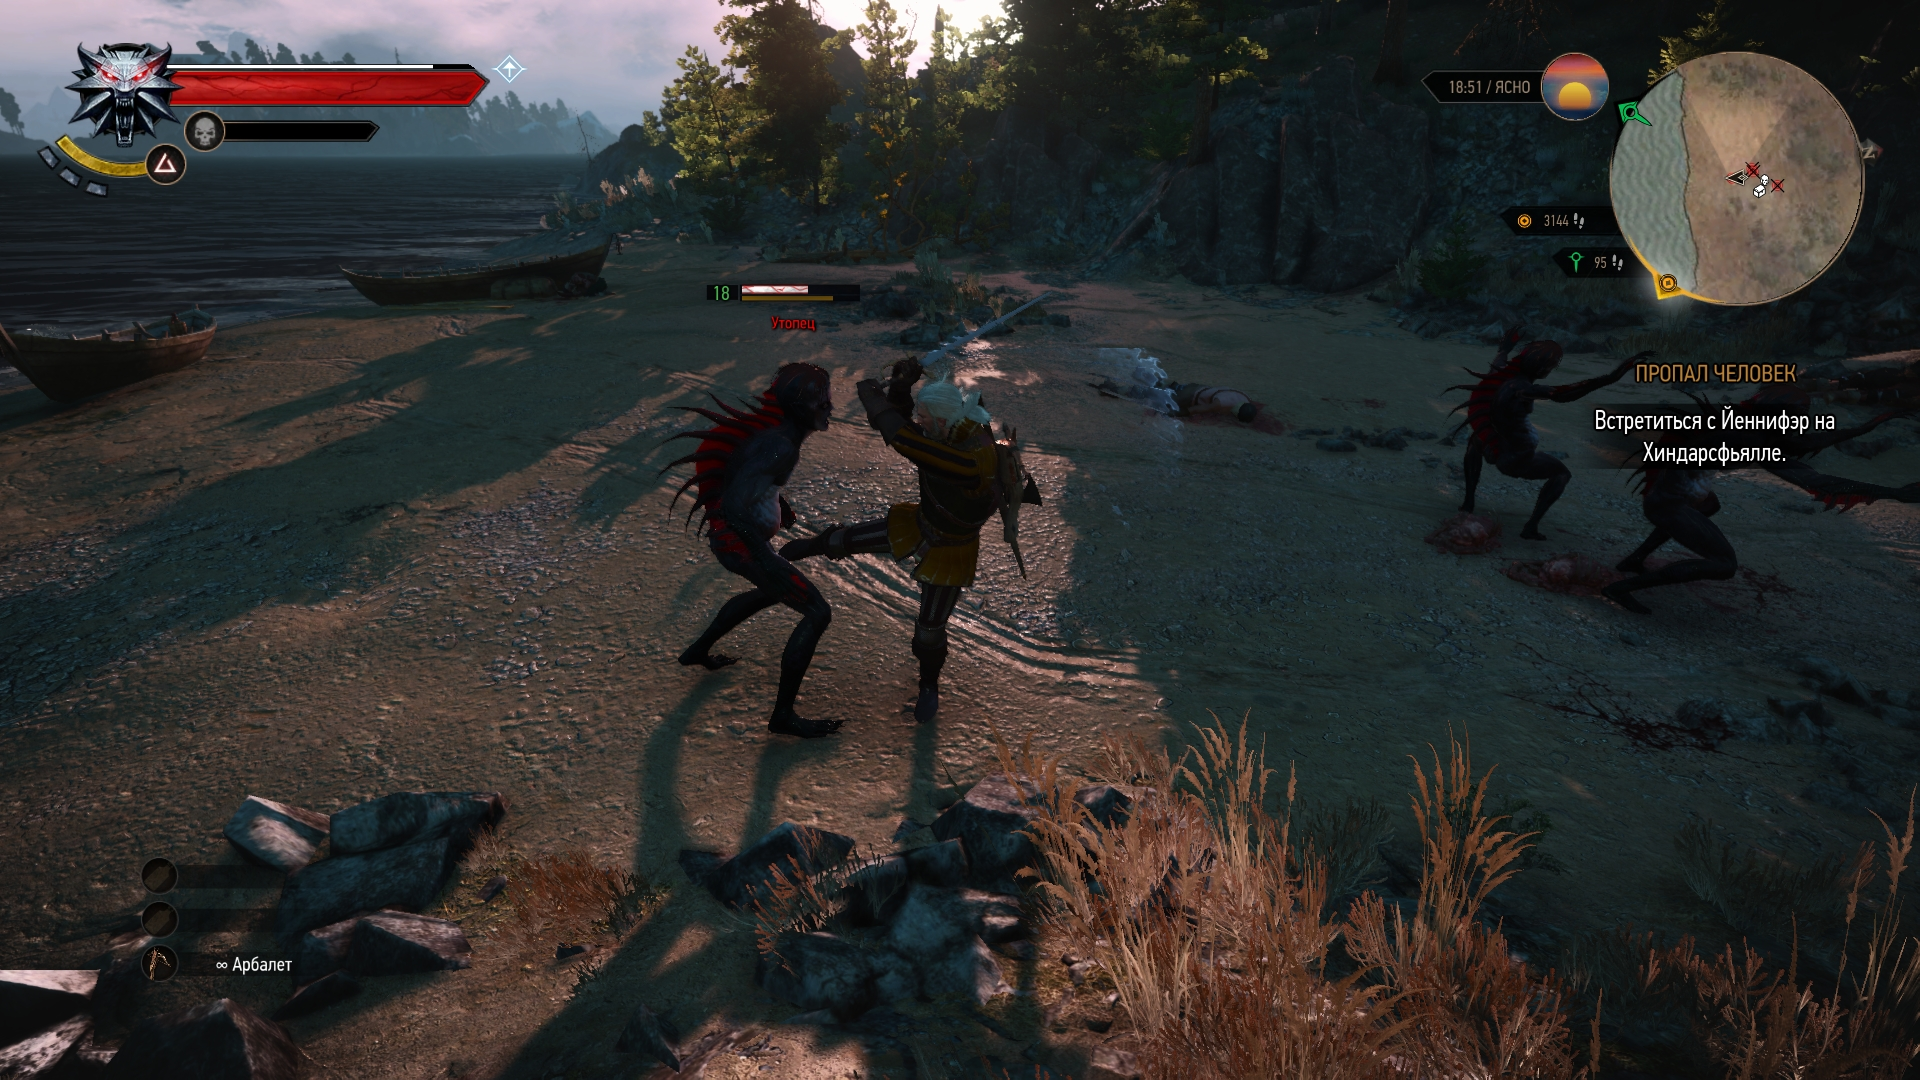 witcher3 2016-10-15 15-19-48-79.jpg - Witcher 3: Wild Hunt, the